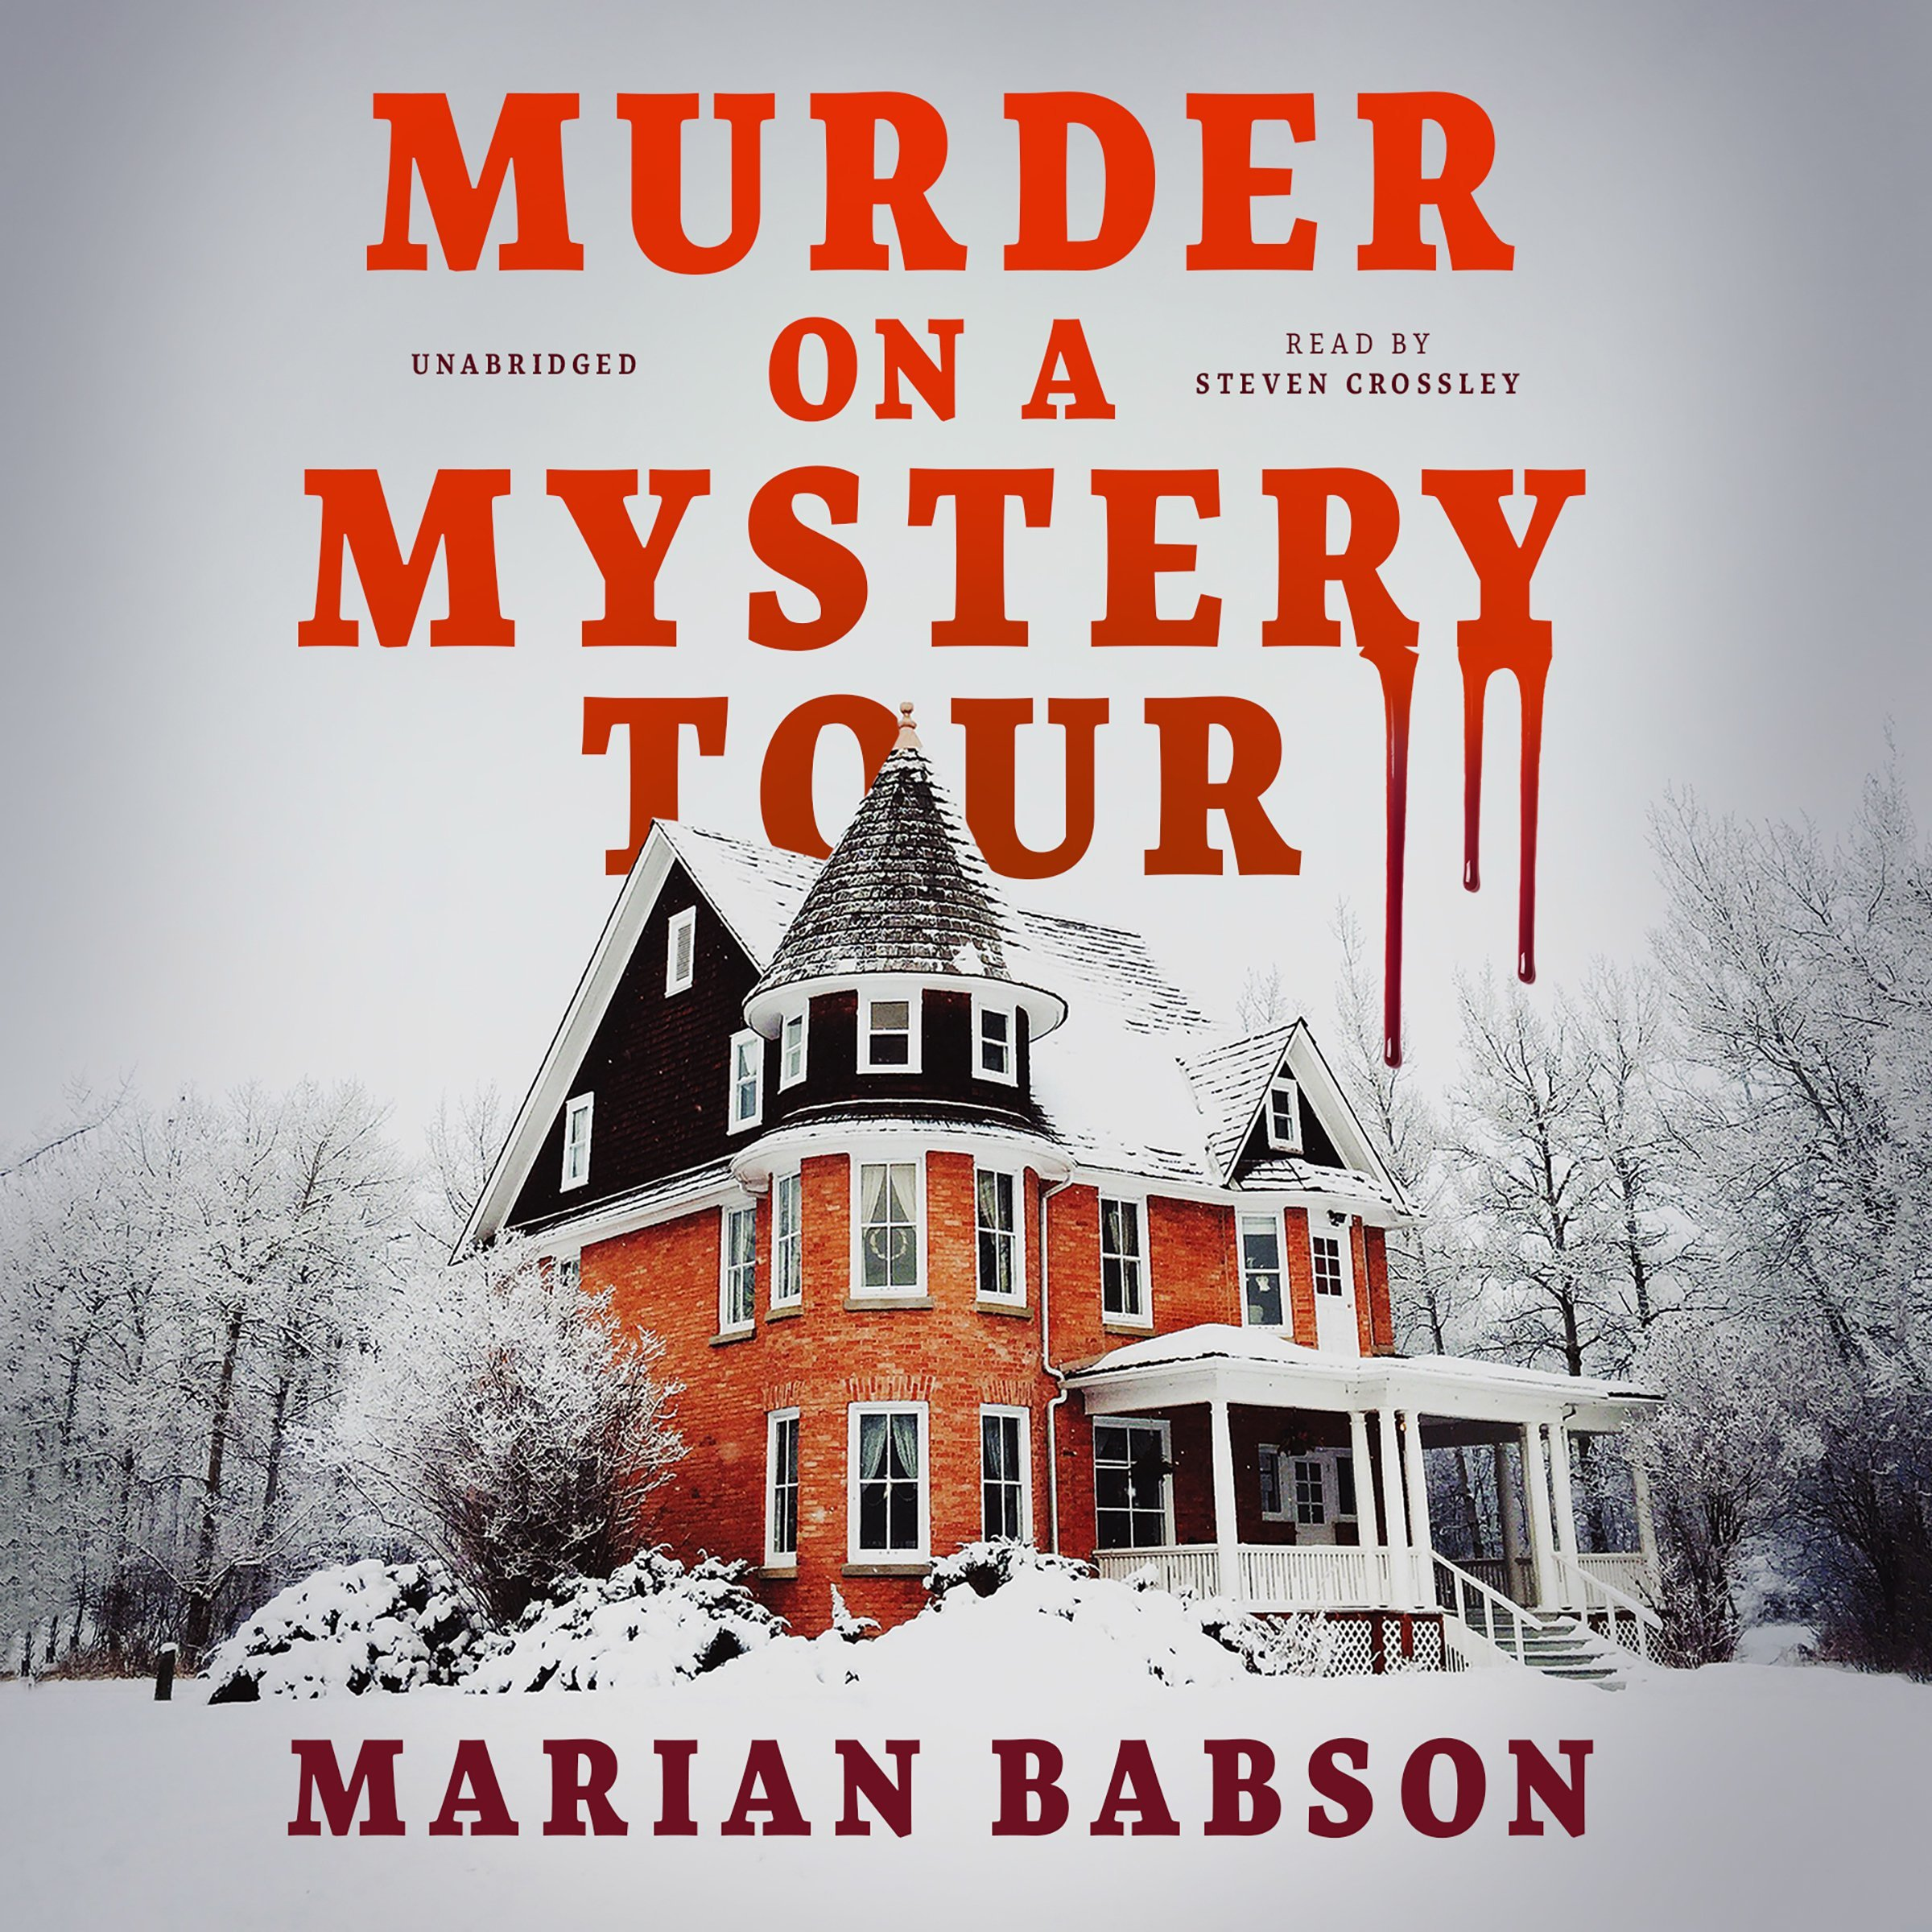 Murder on a mystery tour marian babson 9781504713931 amazon murder on a mystery tour marian babson 9781504713931 amazon books fandeluxe Gallery